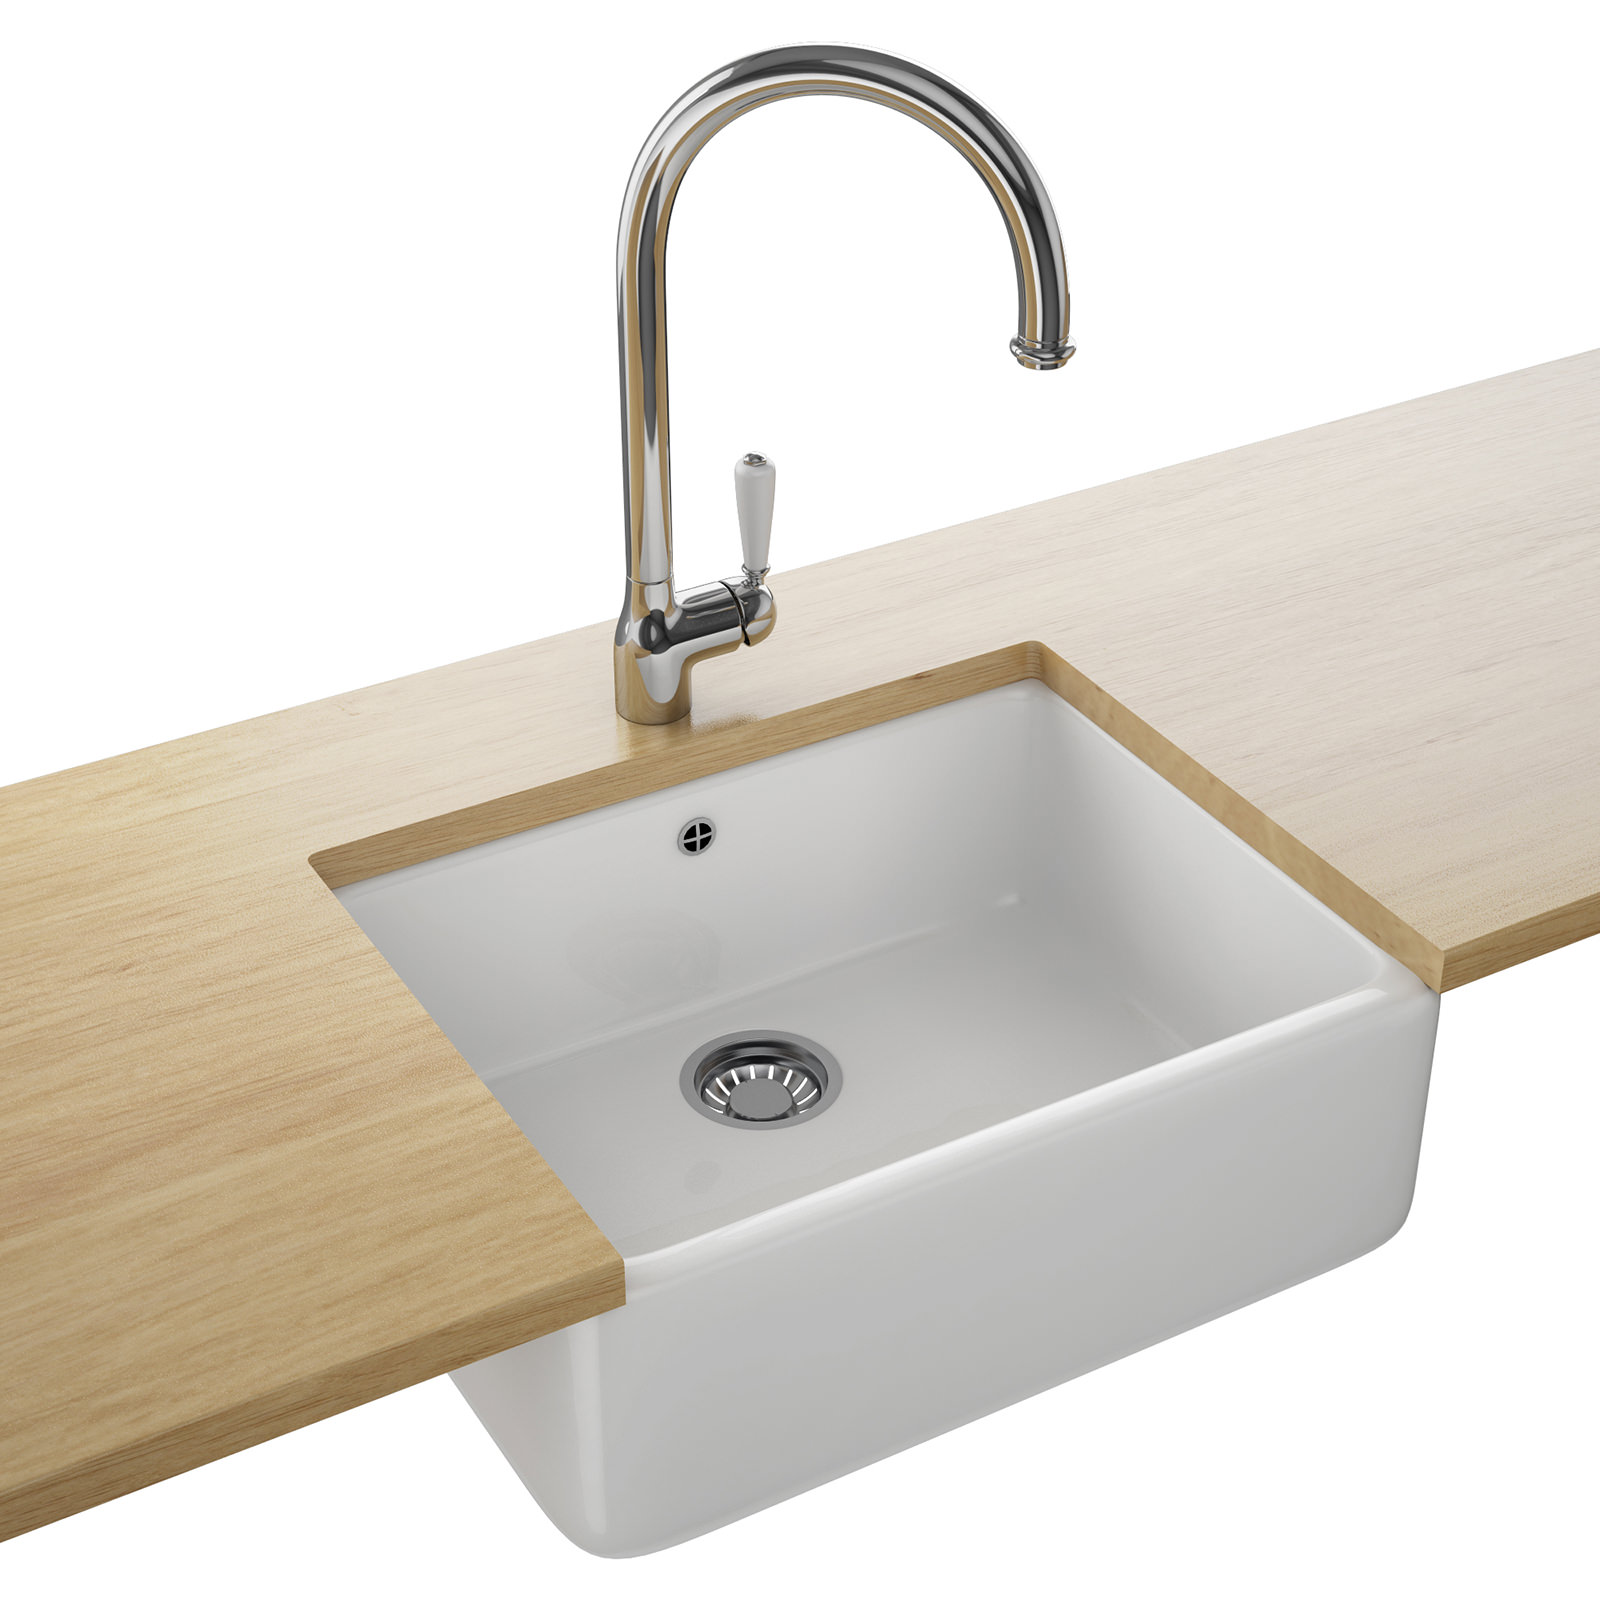 Franke Kitchen Sinks Reviews